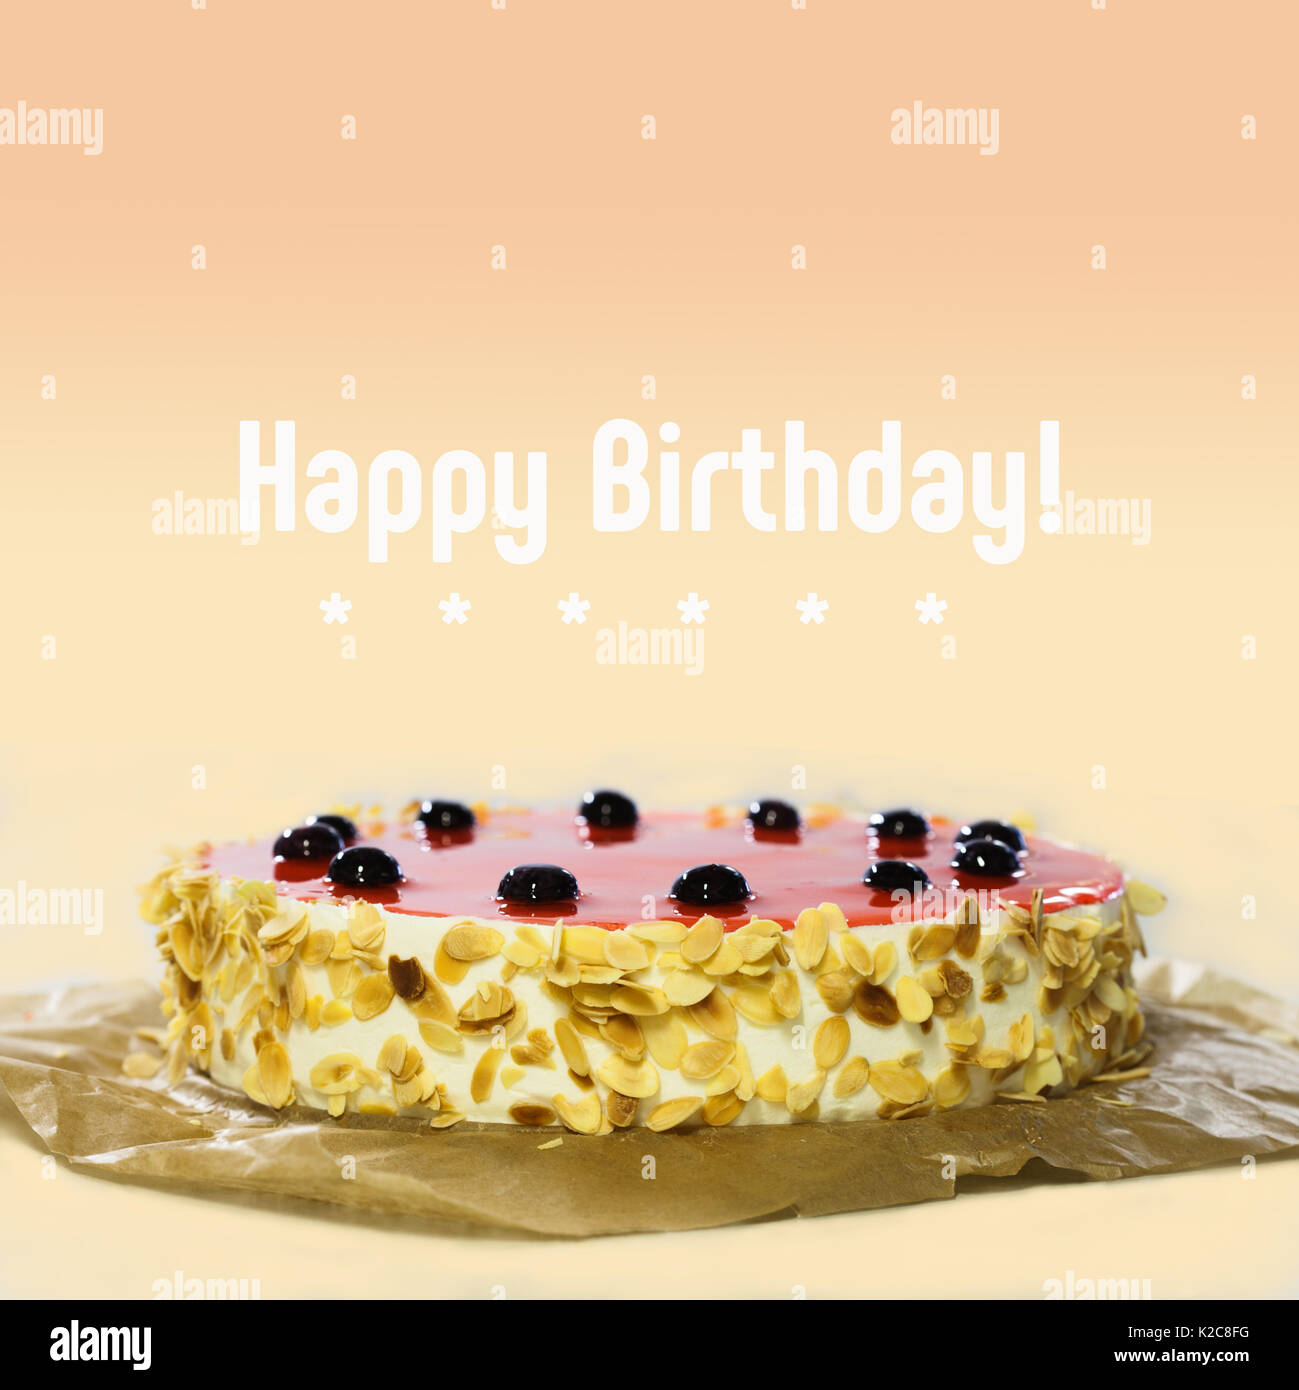 Happy birthday card cake with black cherry red jelly almond stock happy birthday card cake with black cherry red jelly almond flakes sweet dessert on peach color gradient background kristyandbryce Image collections